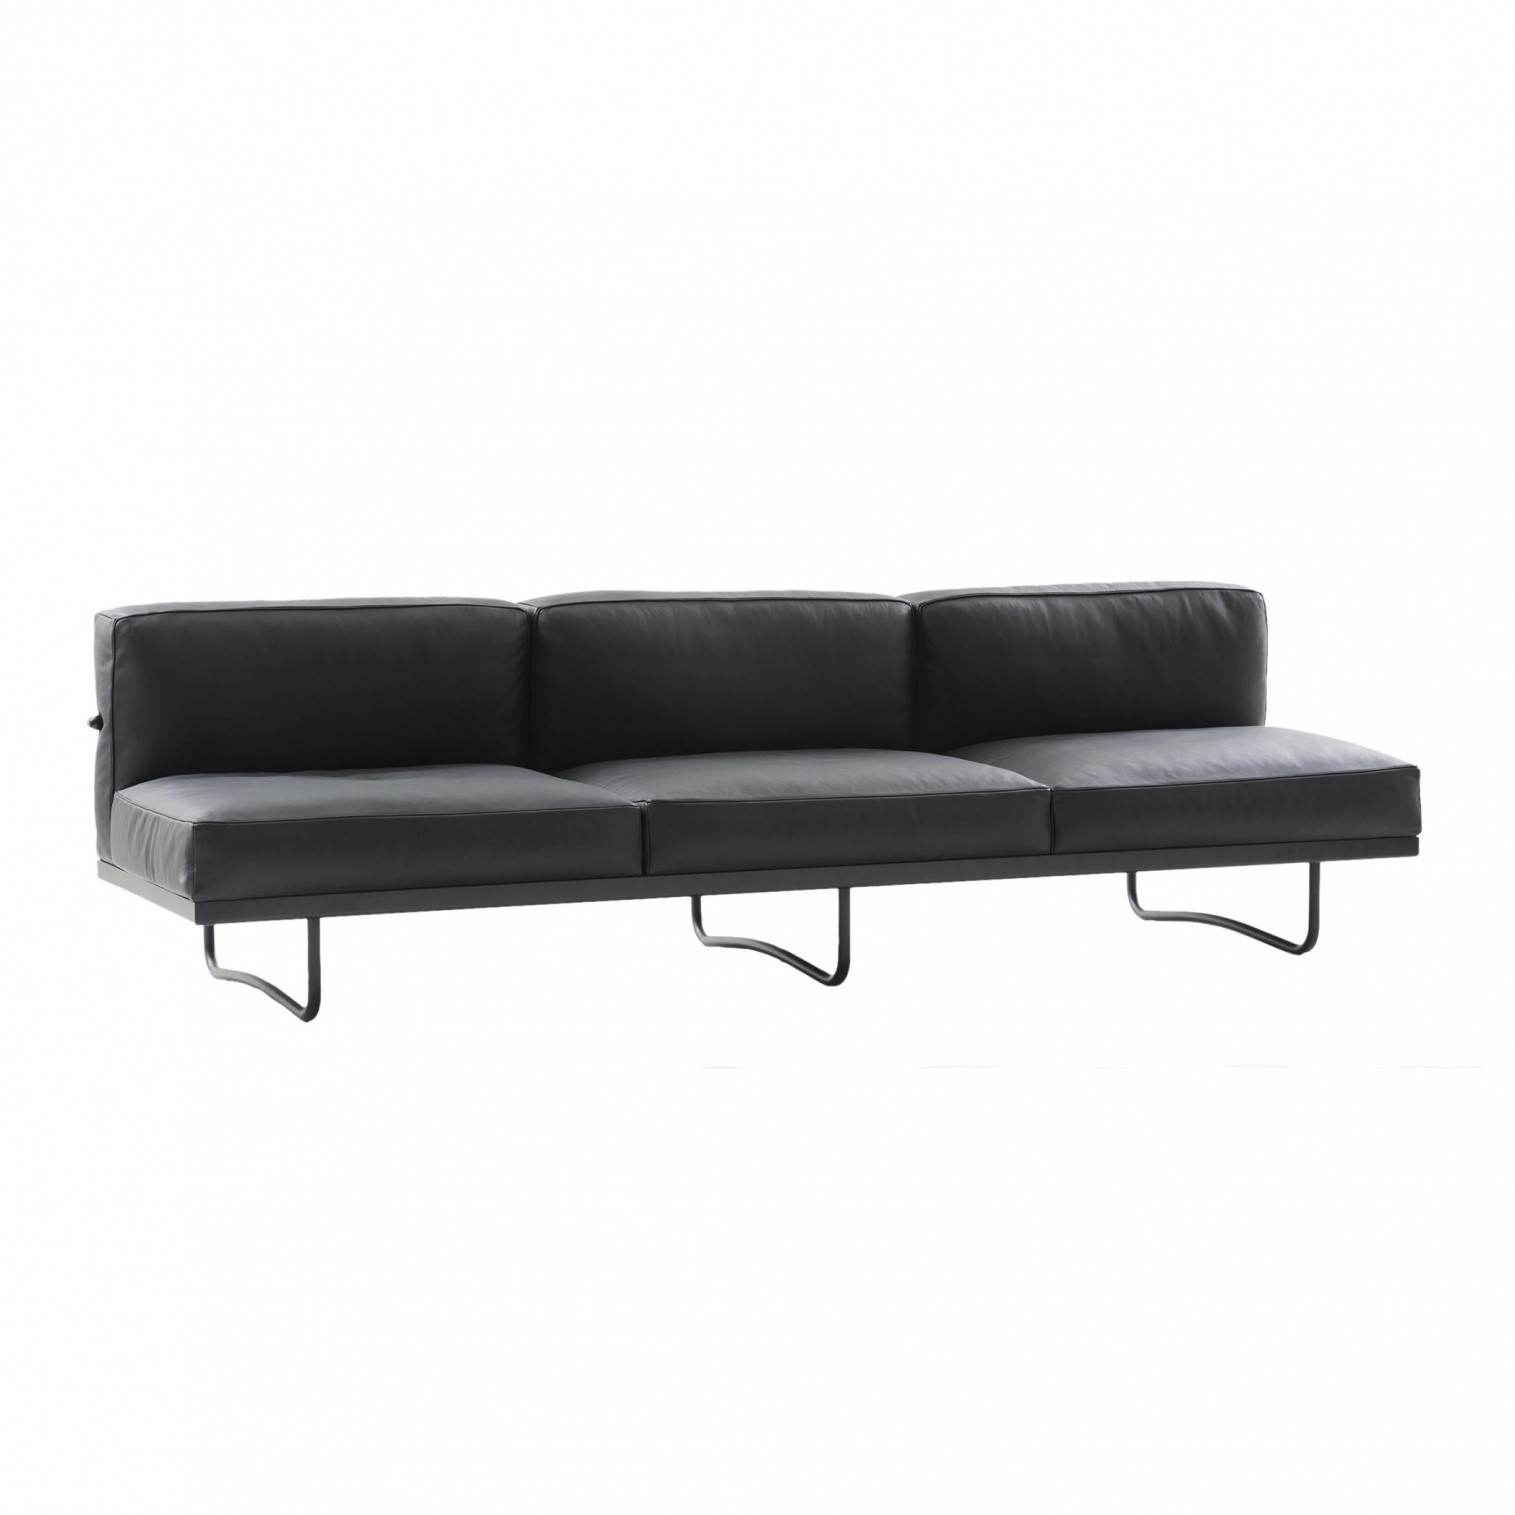 Cassina Le Corbusier Lc5 3 Sitzer Sofa Ambientedirect